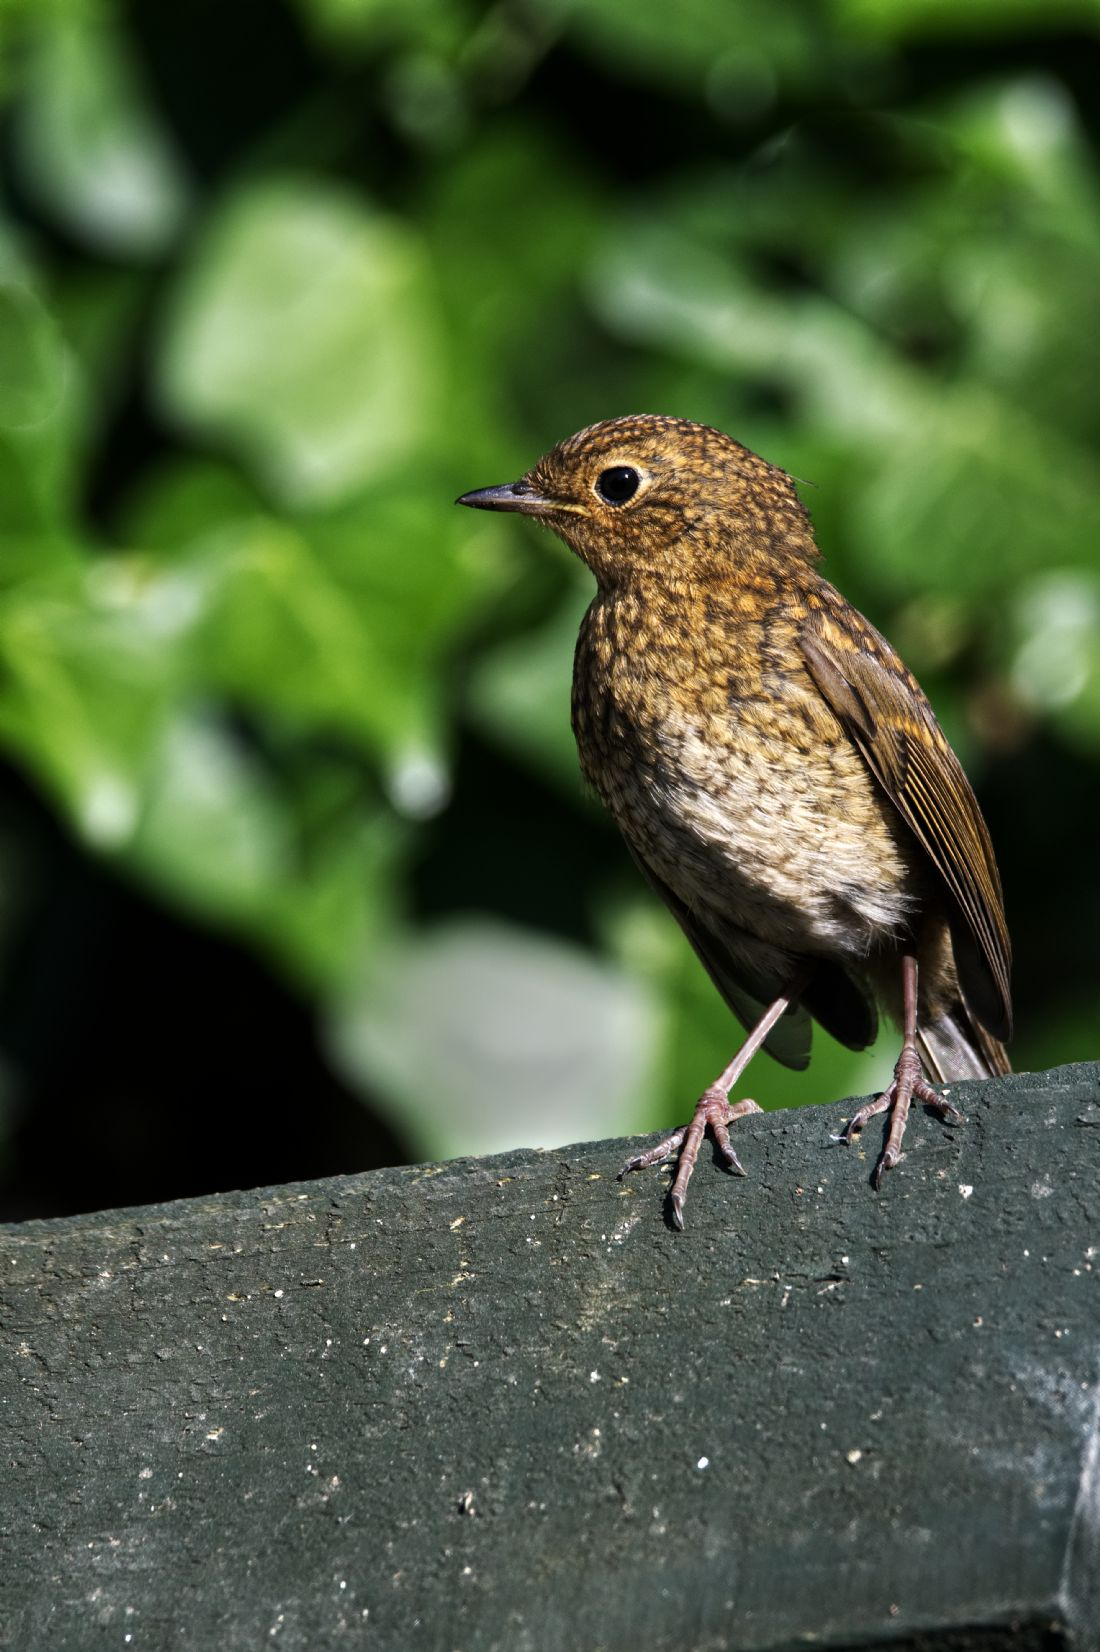 Chris Day | Juvenile Robin